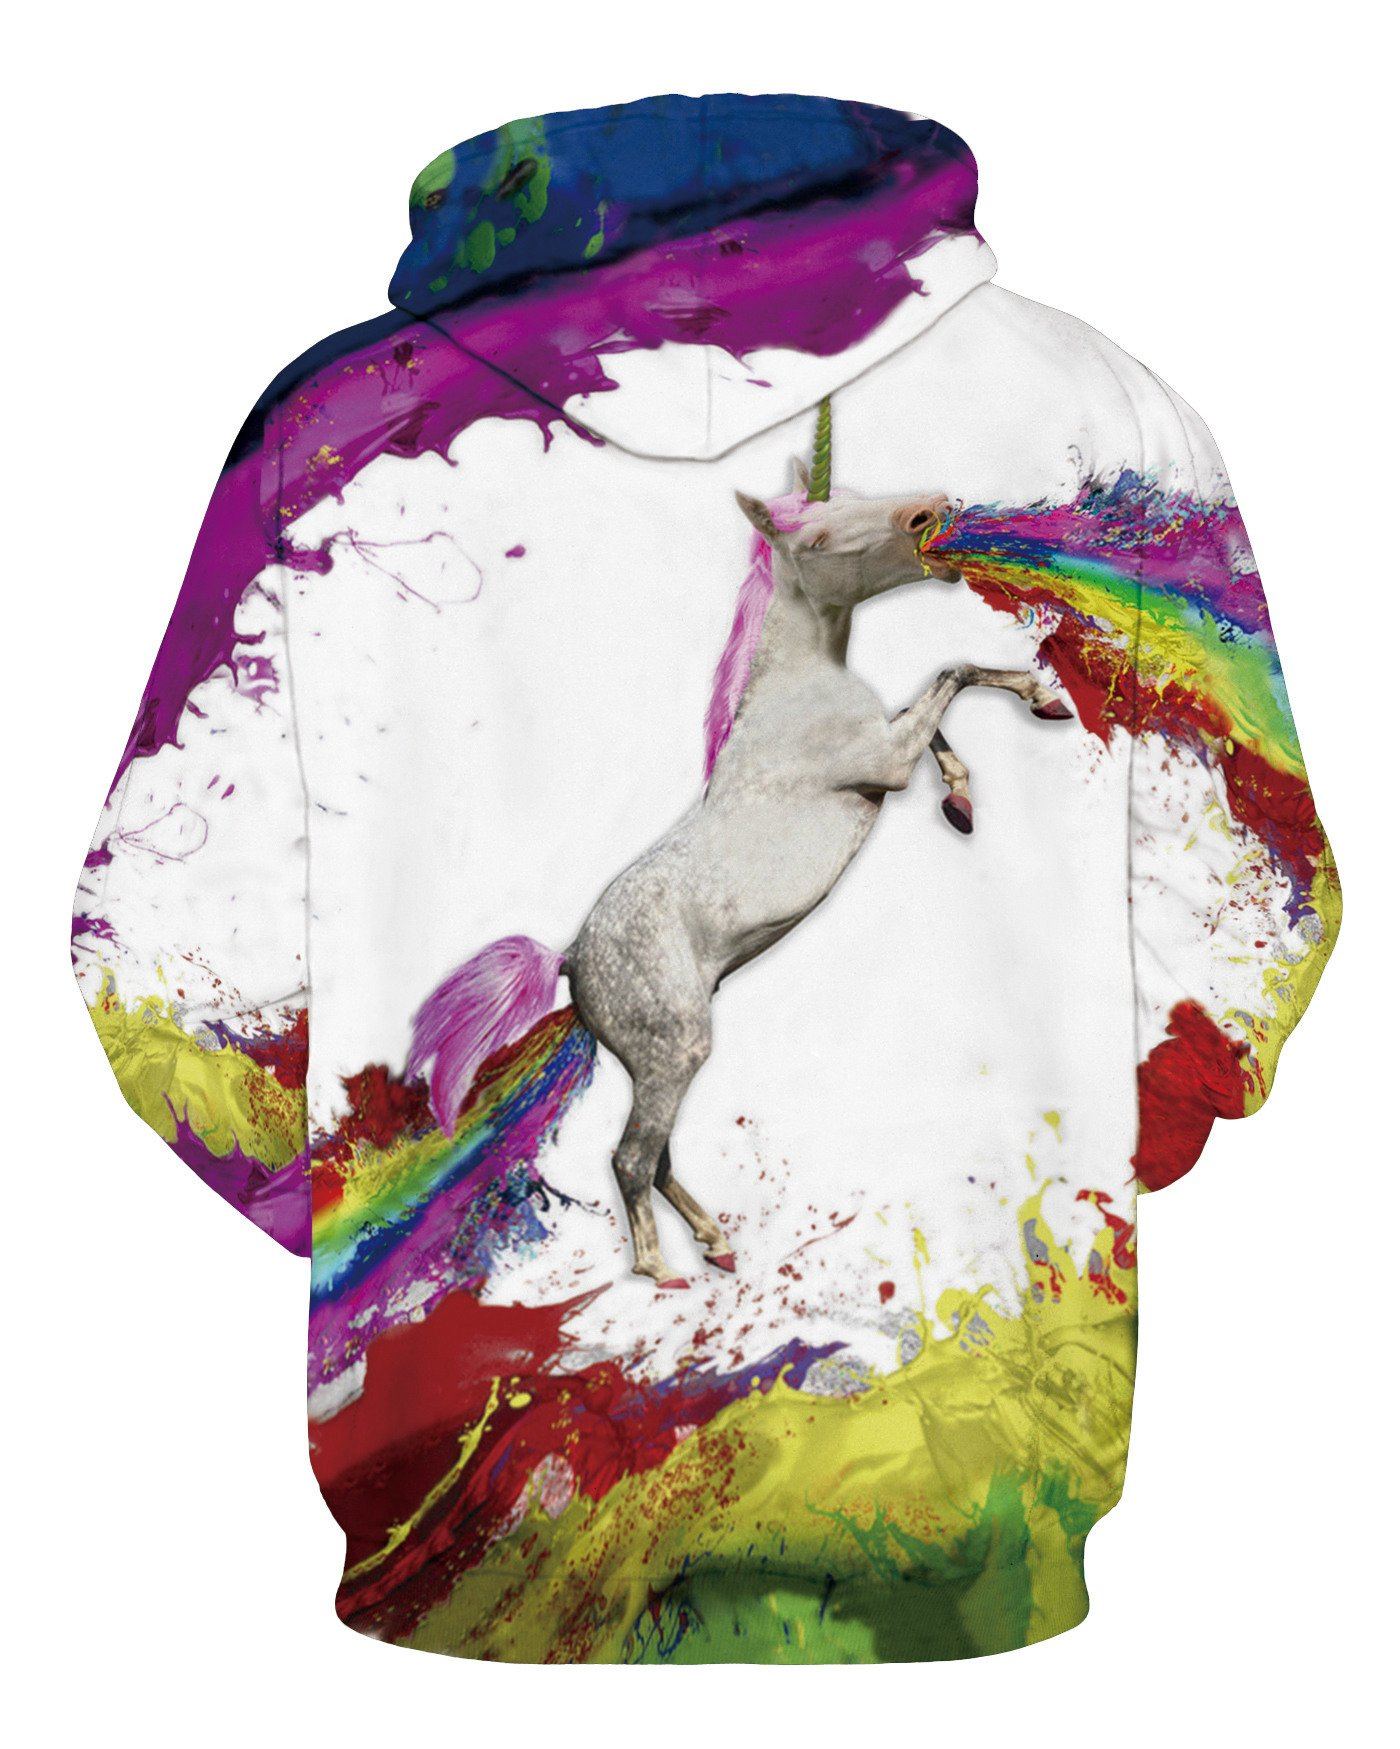 NEWCOSPLAY Unisex Hooded Sweatshirts Soft & Cozy Fashion Hoodies (XXL, Rainbow Unicorn)